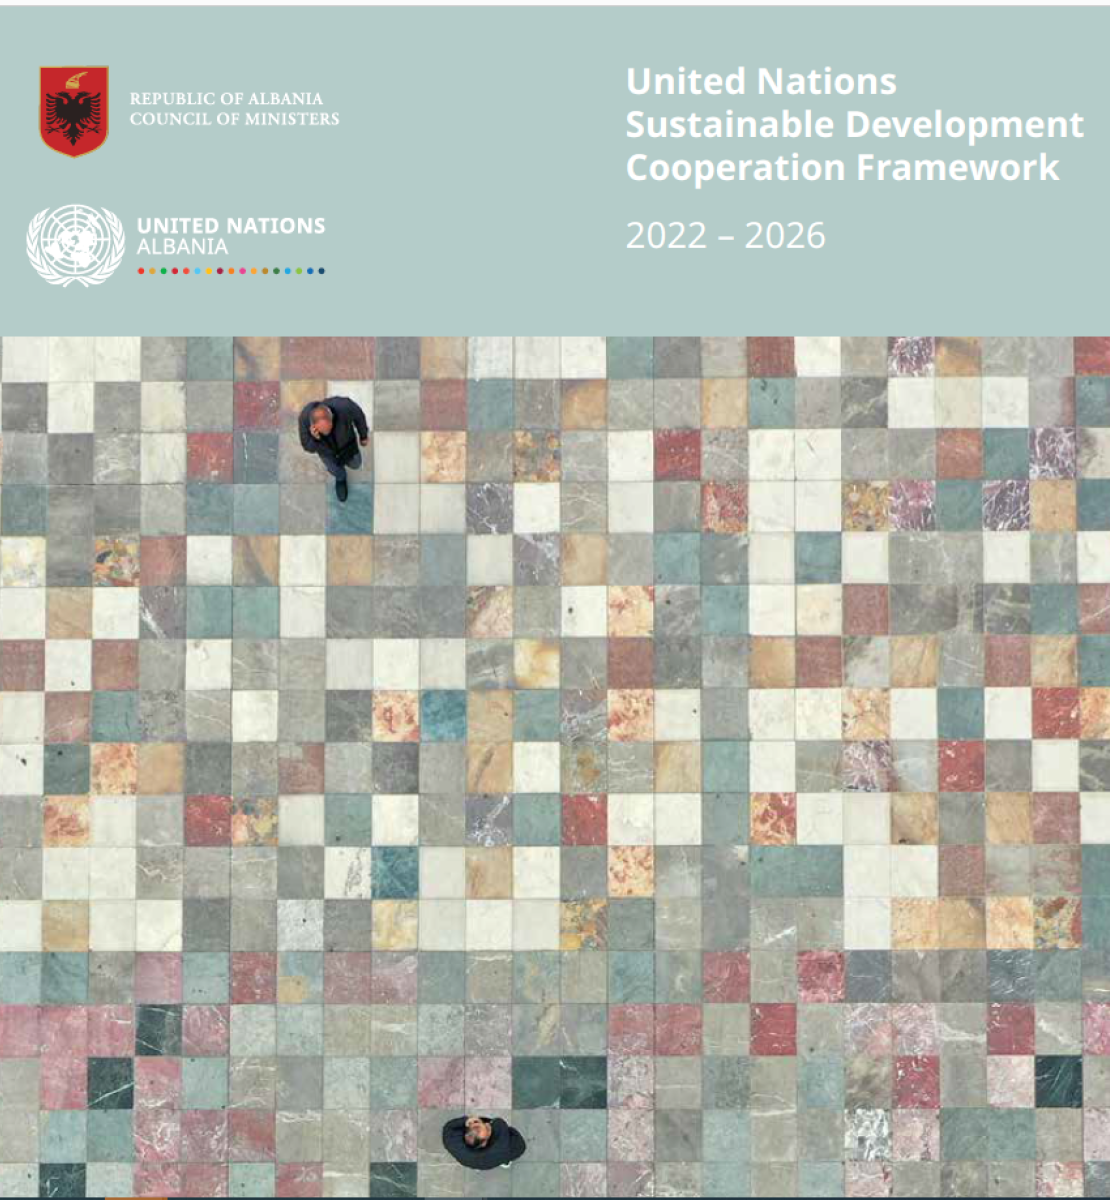 This is a document with a light green background and a tiled image on the cover.  The UN and Government of Armenia logos appear on the top left of page.